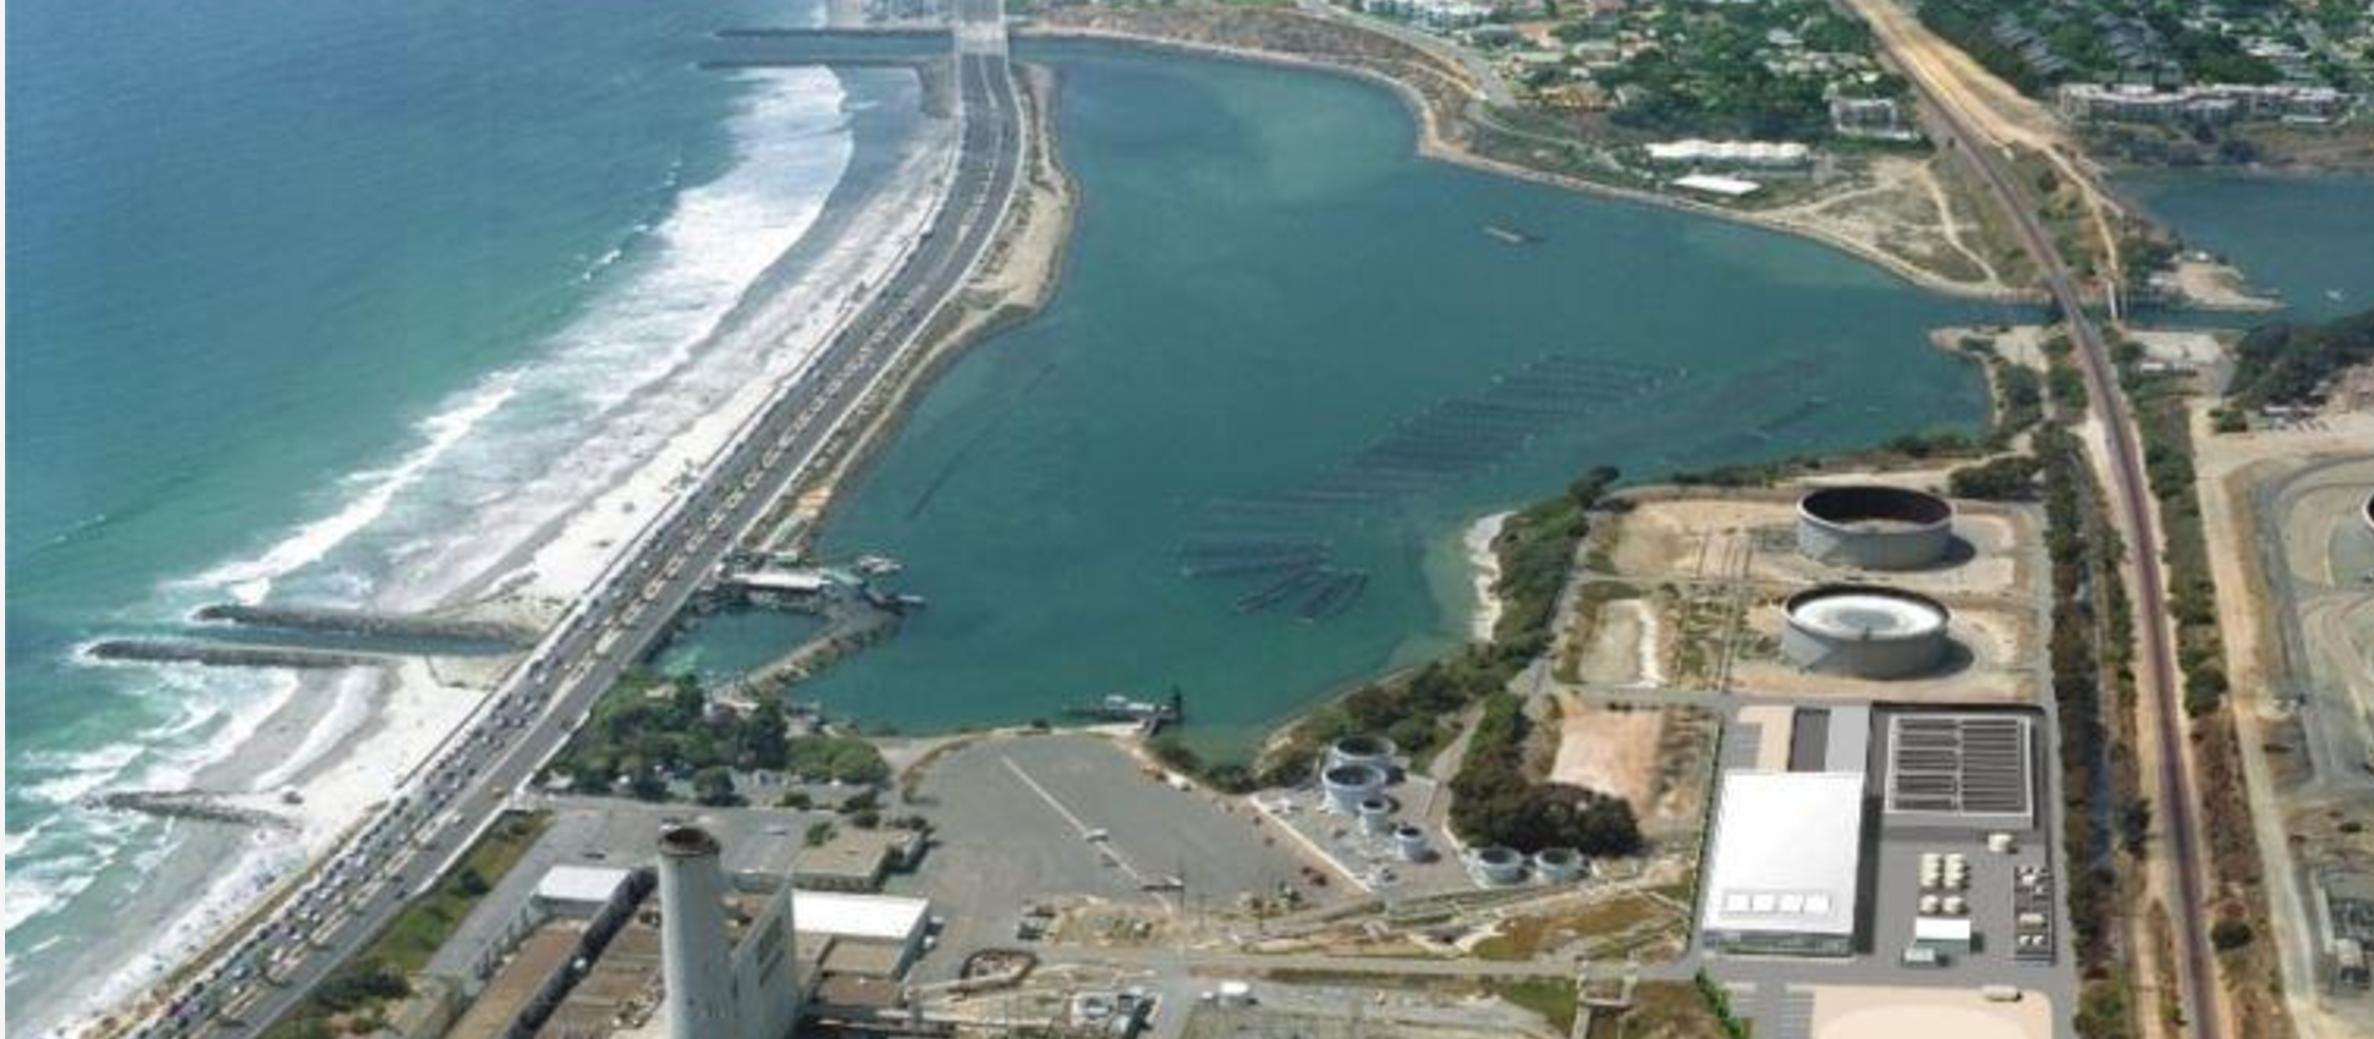 Israeli company launches Western Hemisphere's largest desalination plant in California